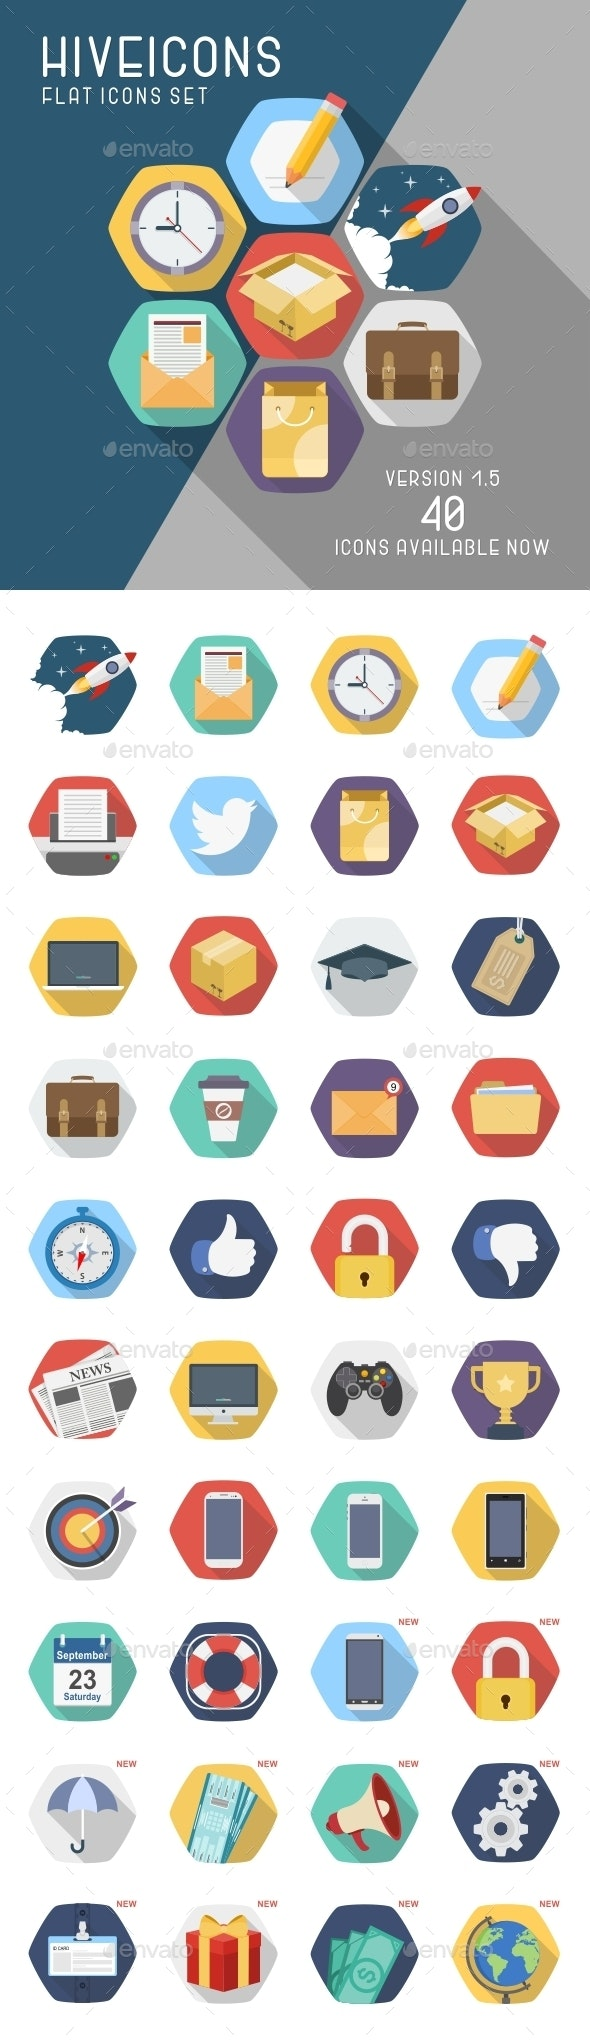 Hive Icons Set - Business Icons